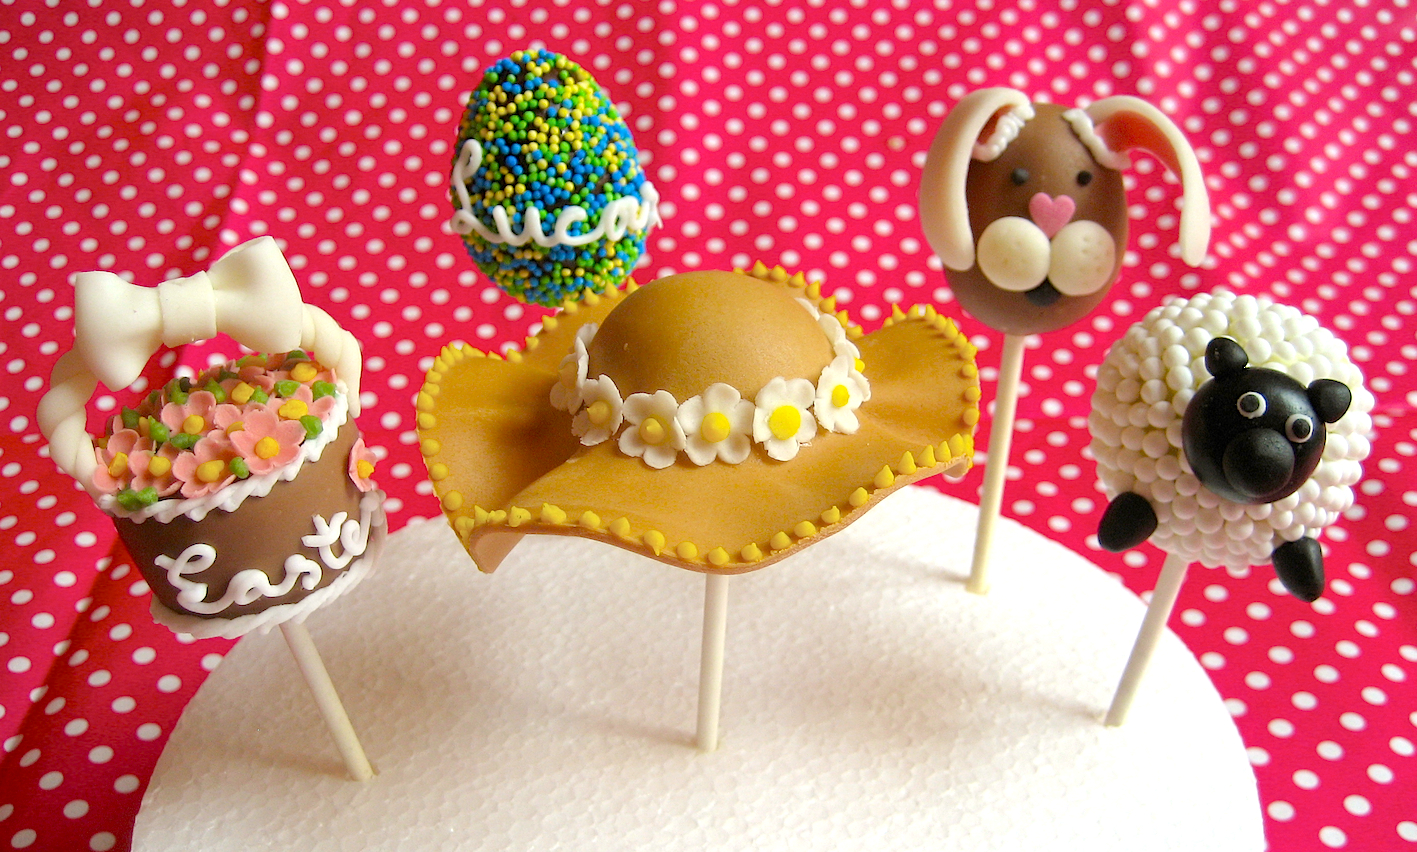 Cake Pop Designs For Easter : cakes on Pinterest 260 Pins